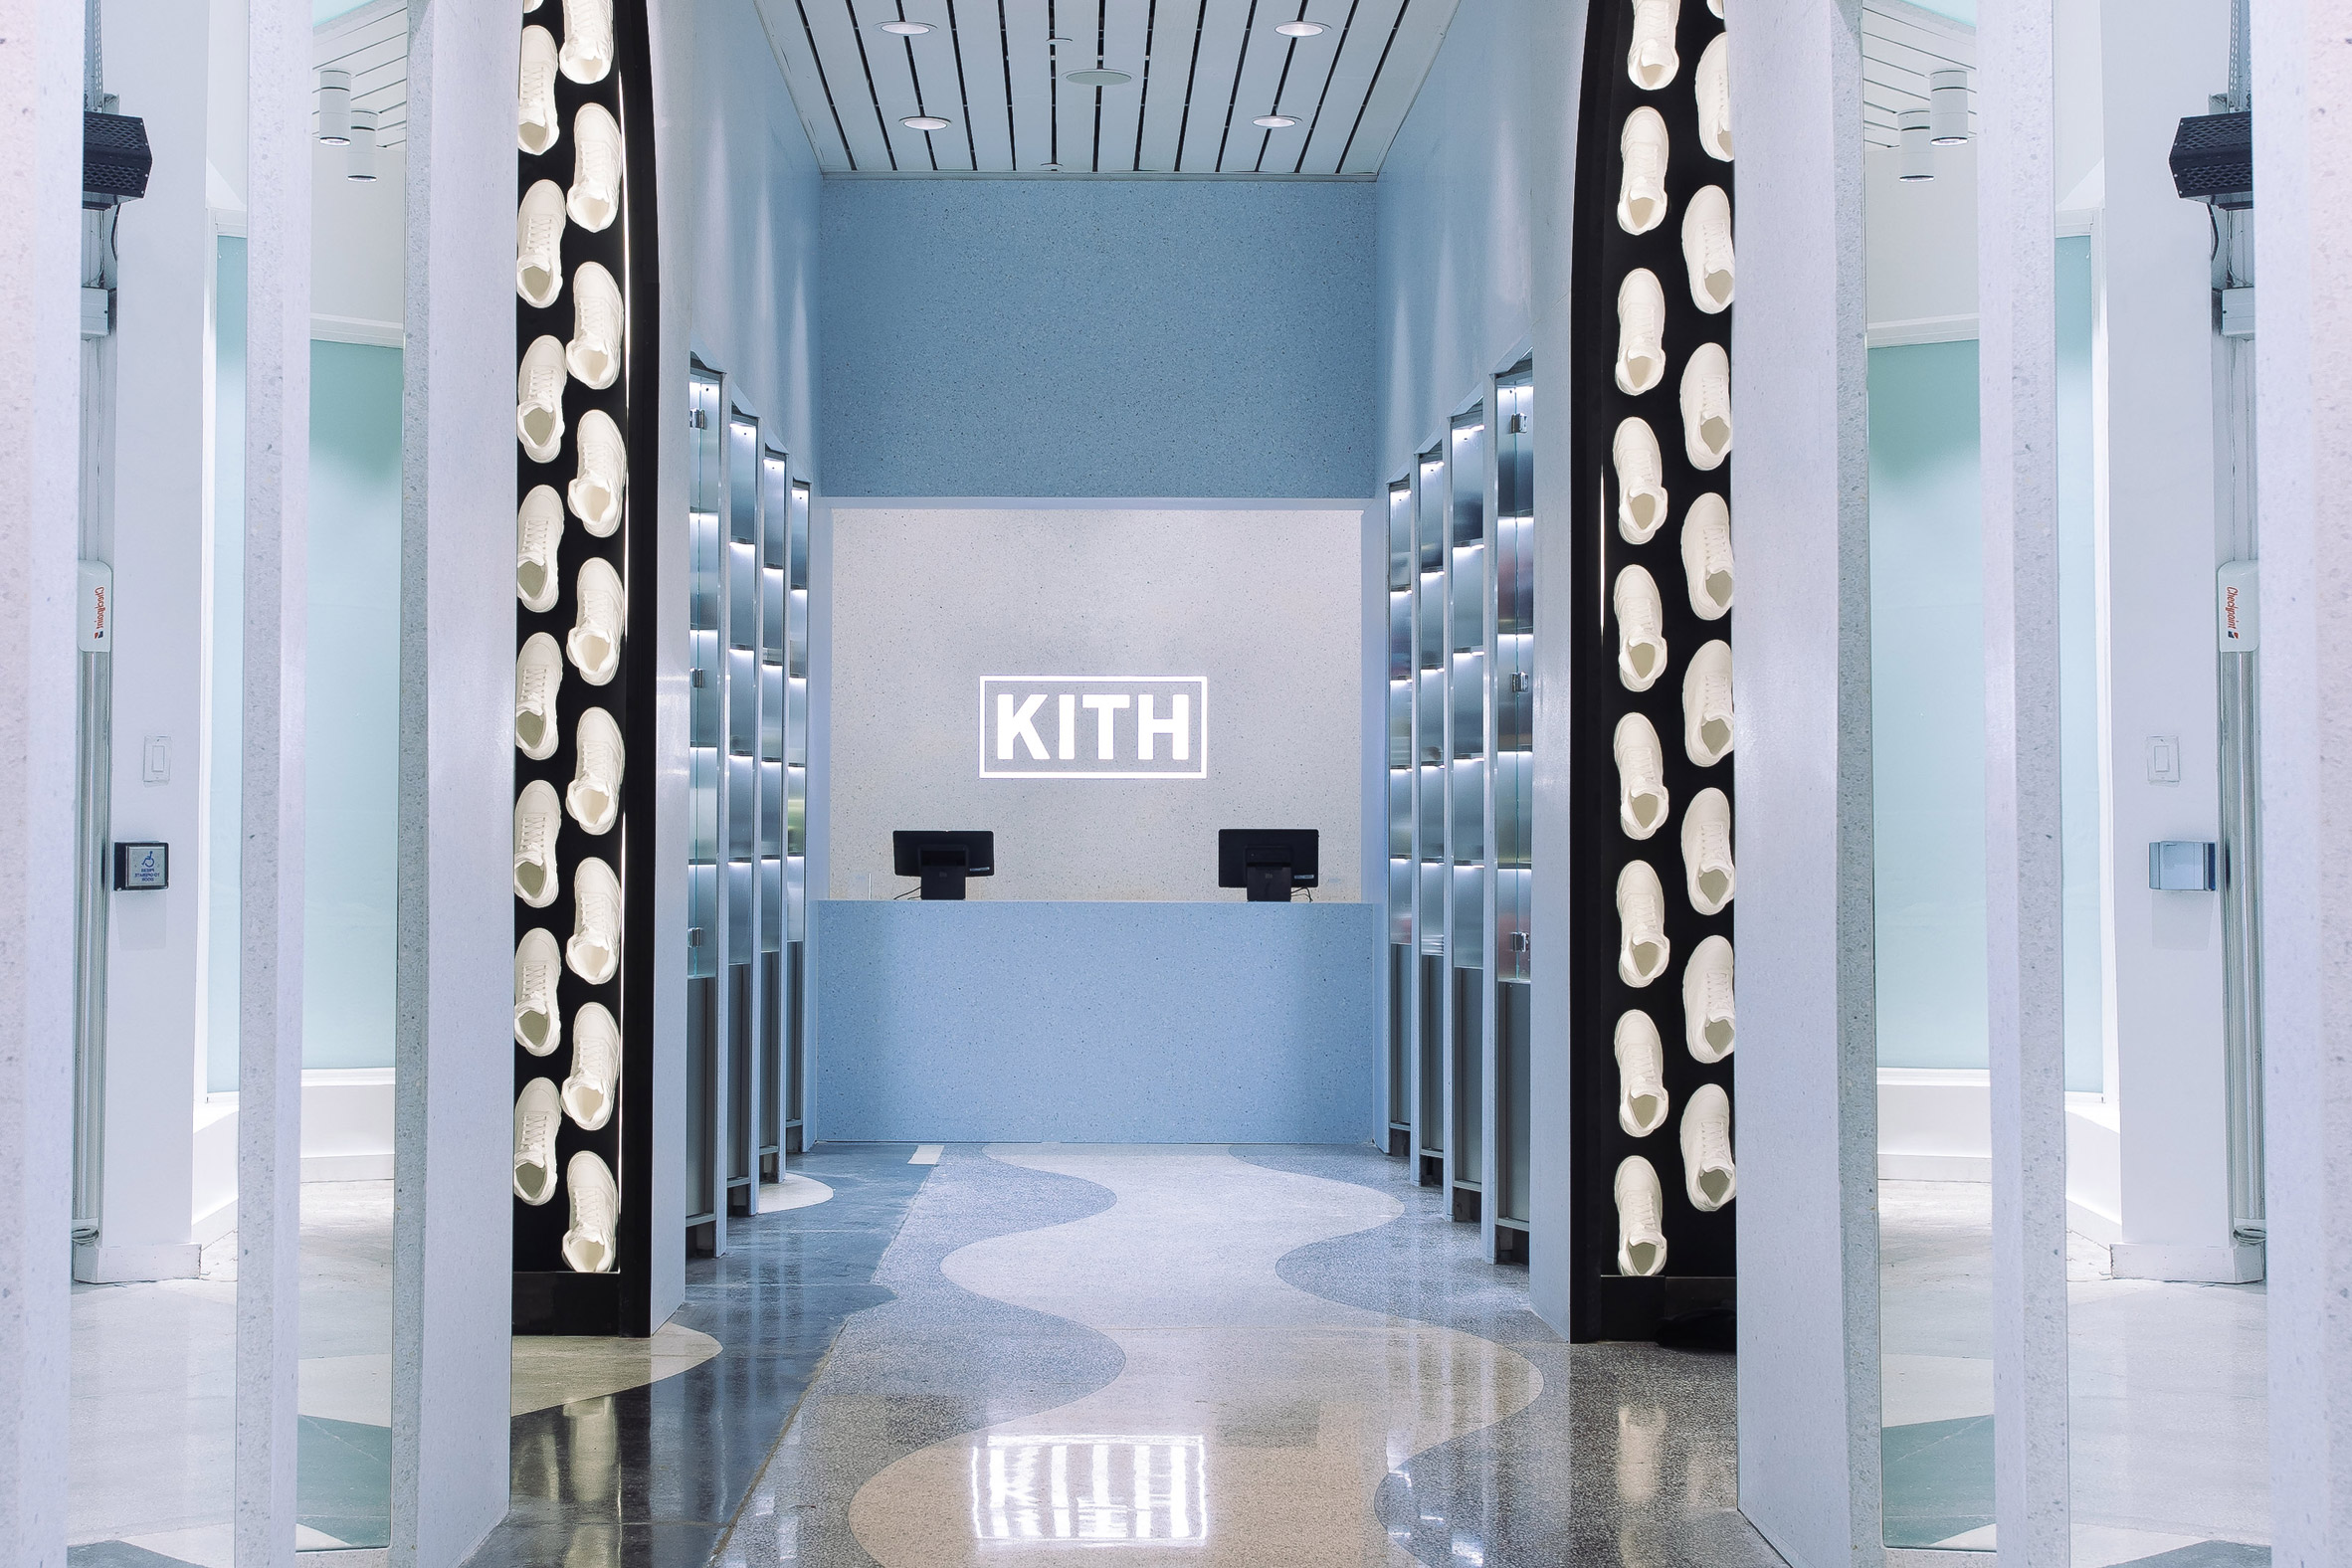 ee084a0b3389 3Novices Snarkitecture designs gallery-like interior for Kith s ...